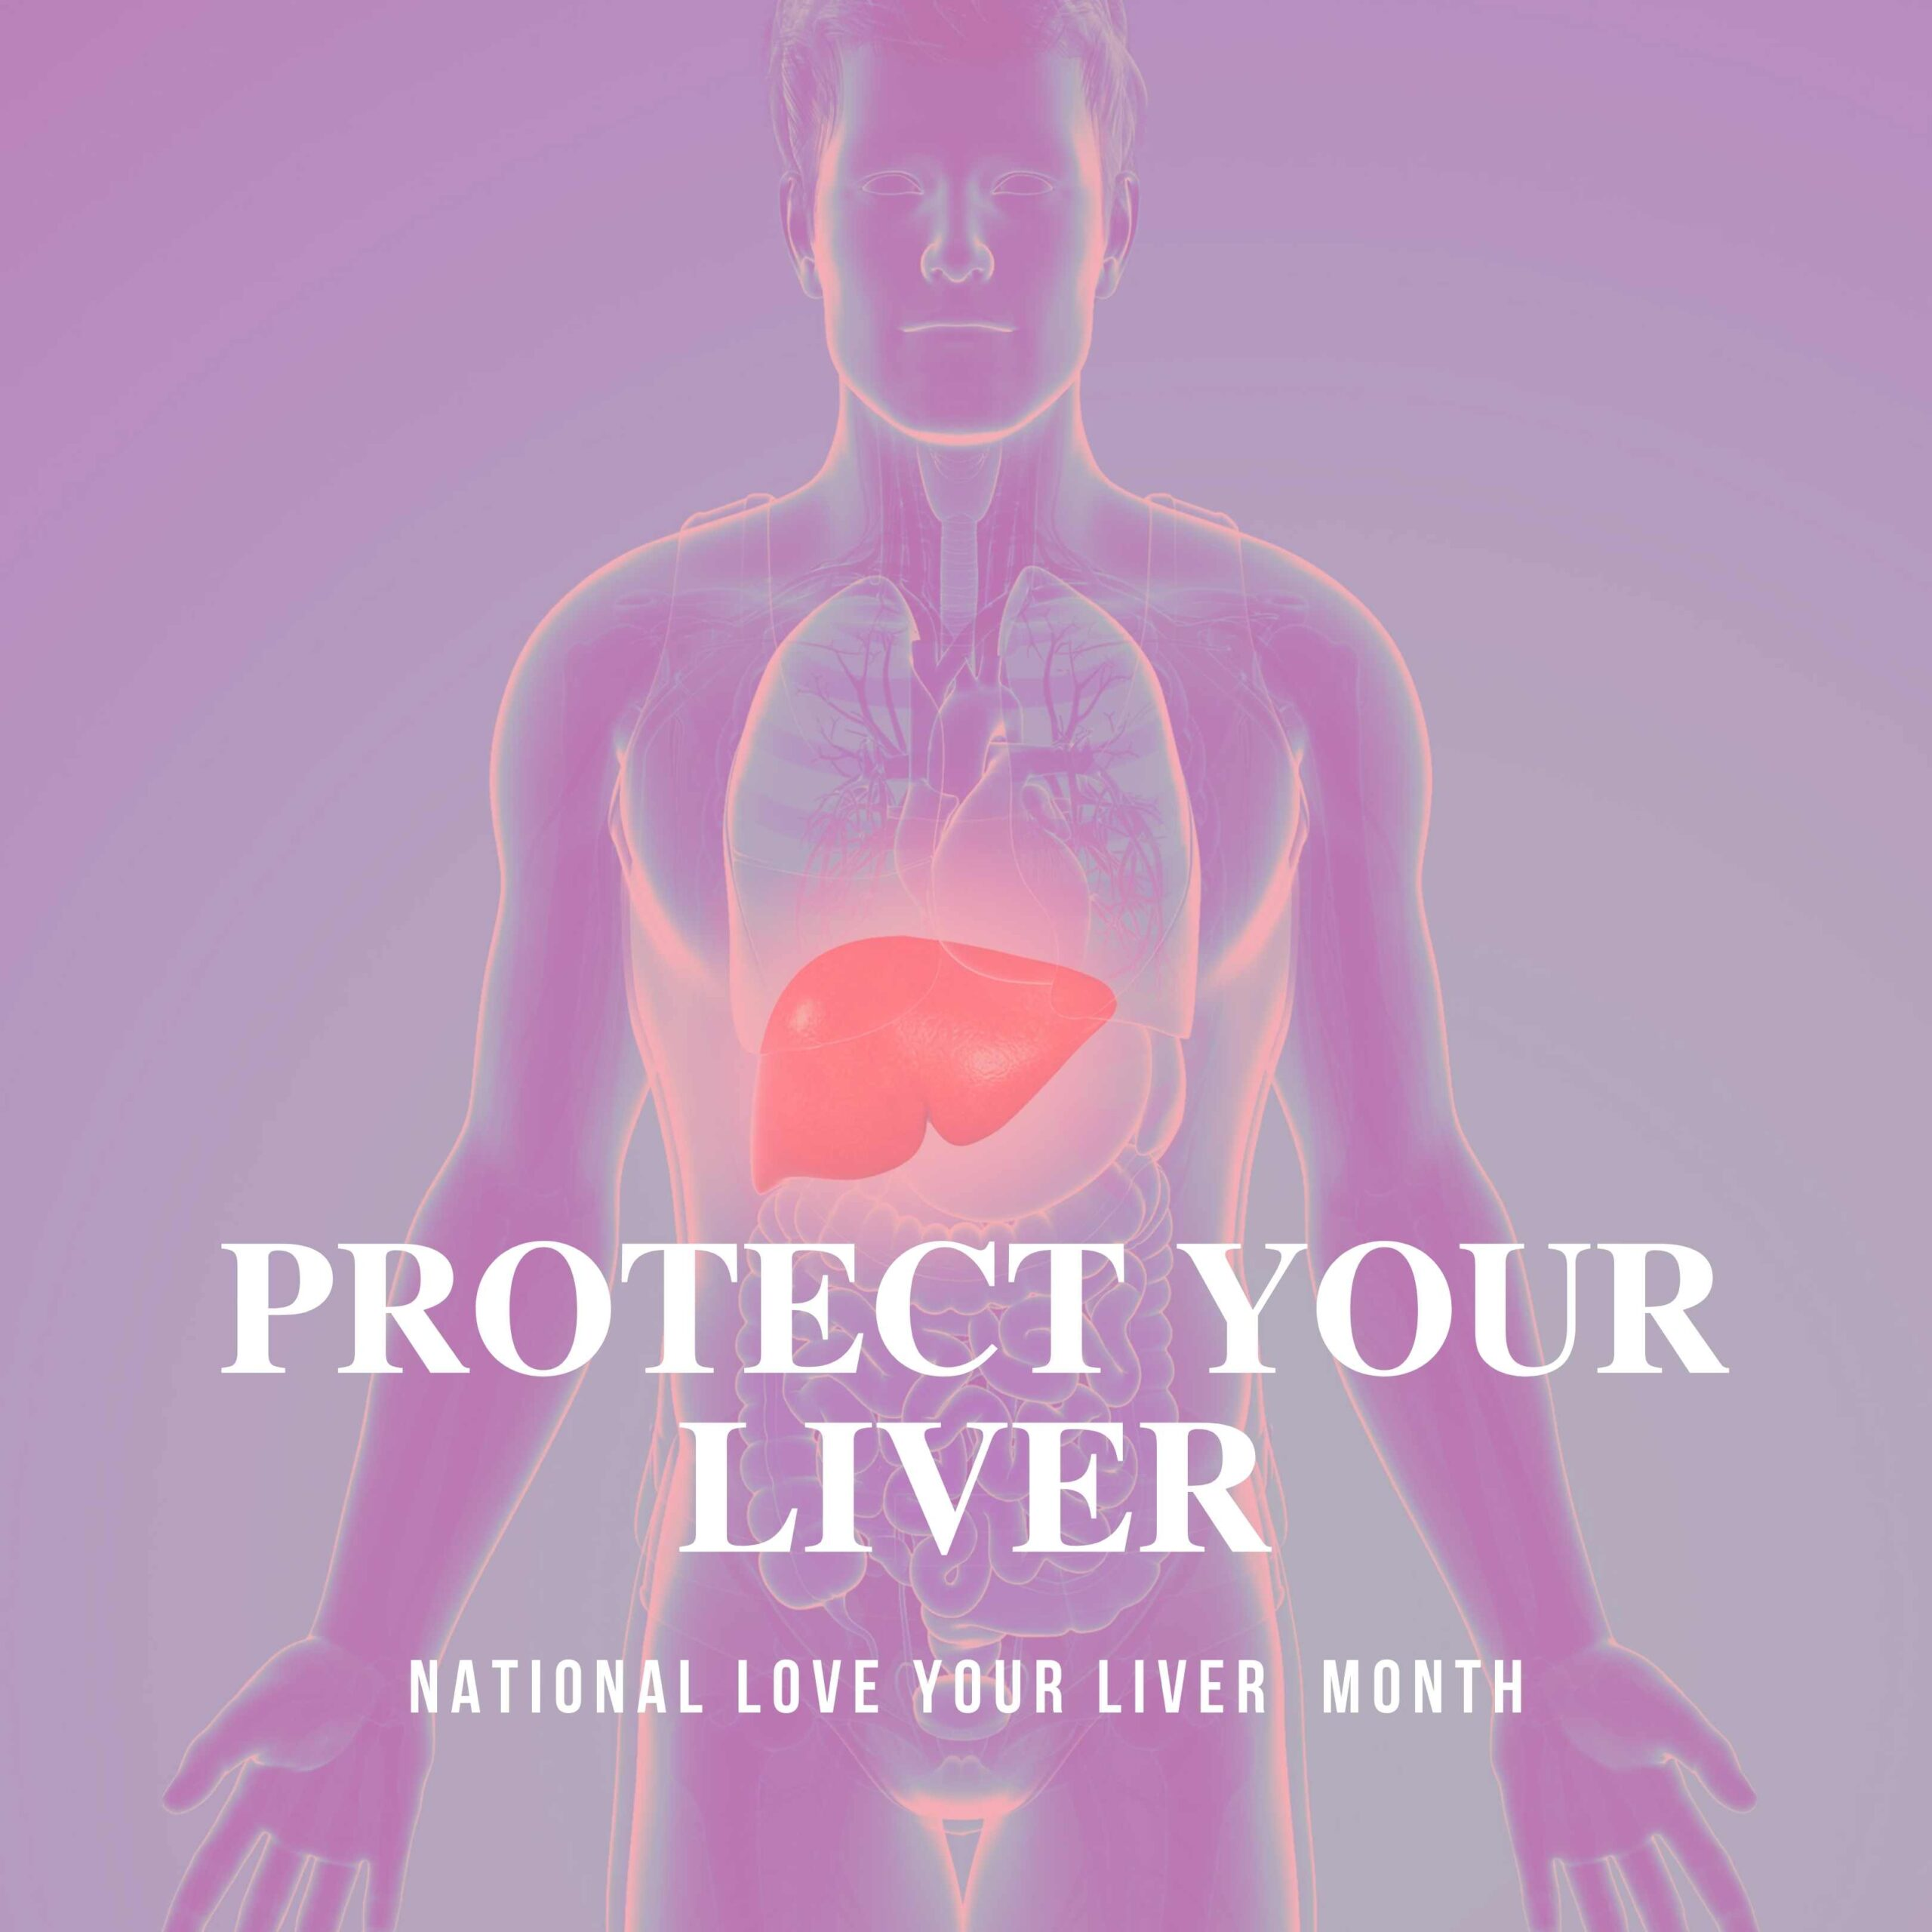 National Love Your Liver Month